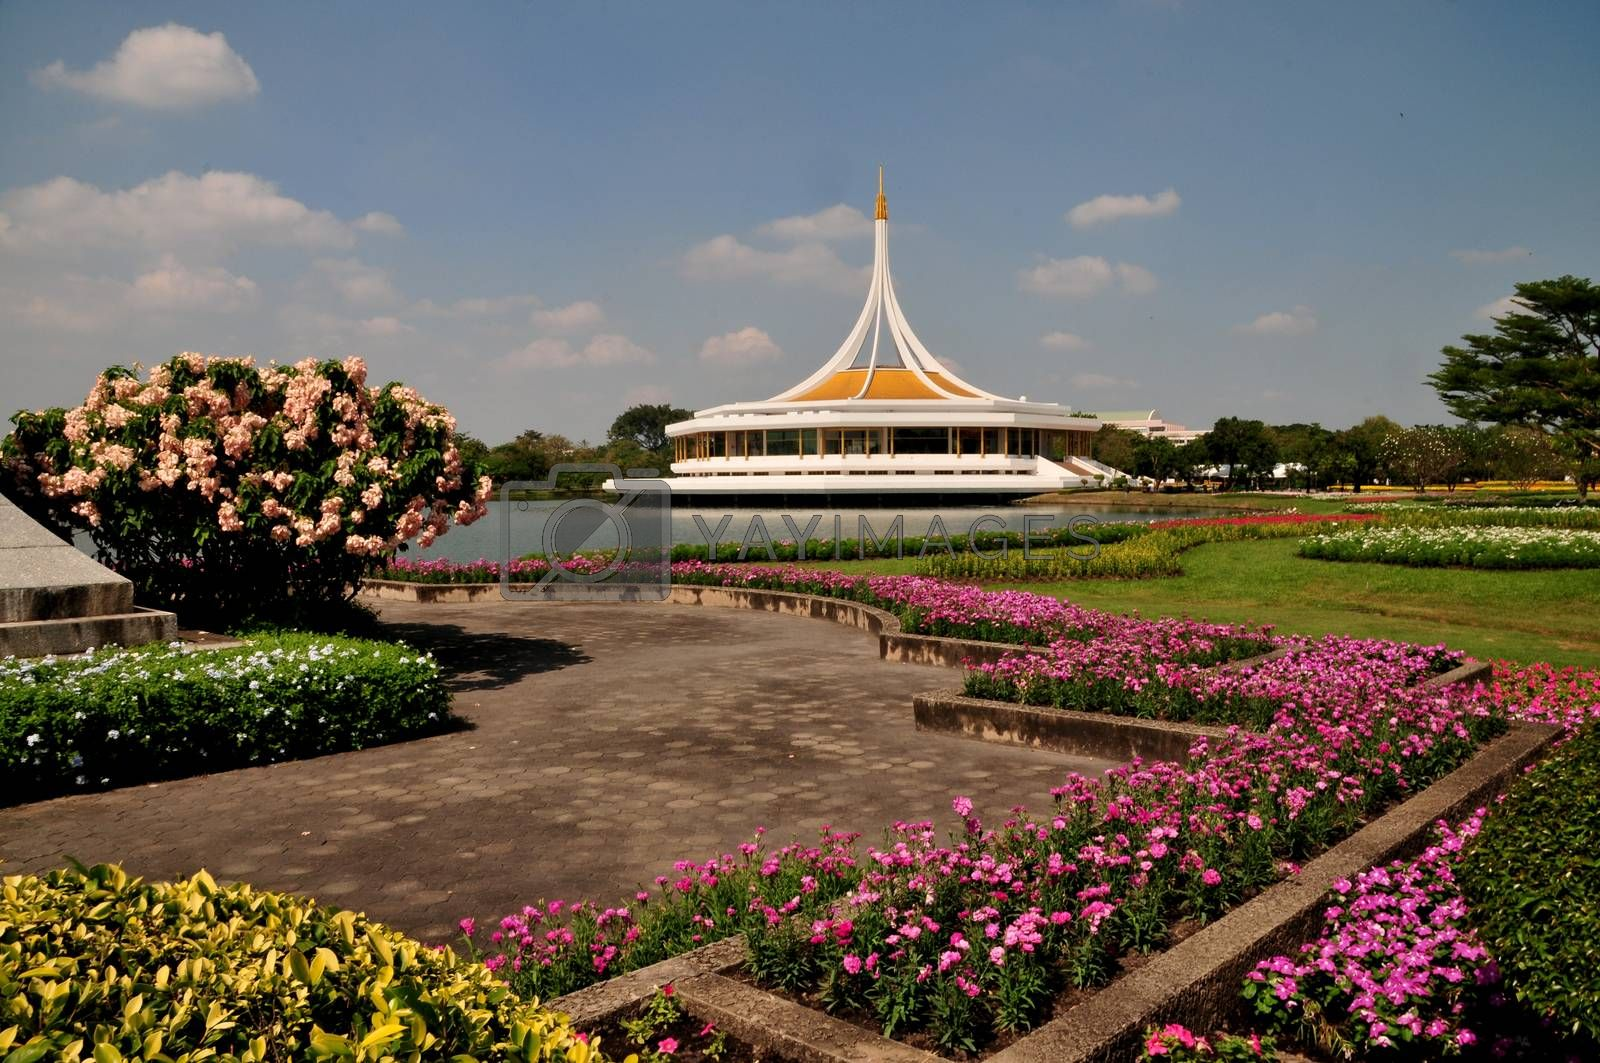 Ratchamangkhala Pavilion of Suan Luang Rama IX Public Park Bangkok,Thailand With beautifully decorated flowers